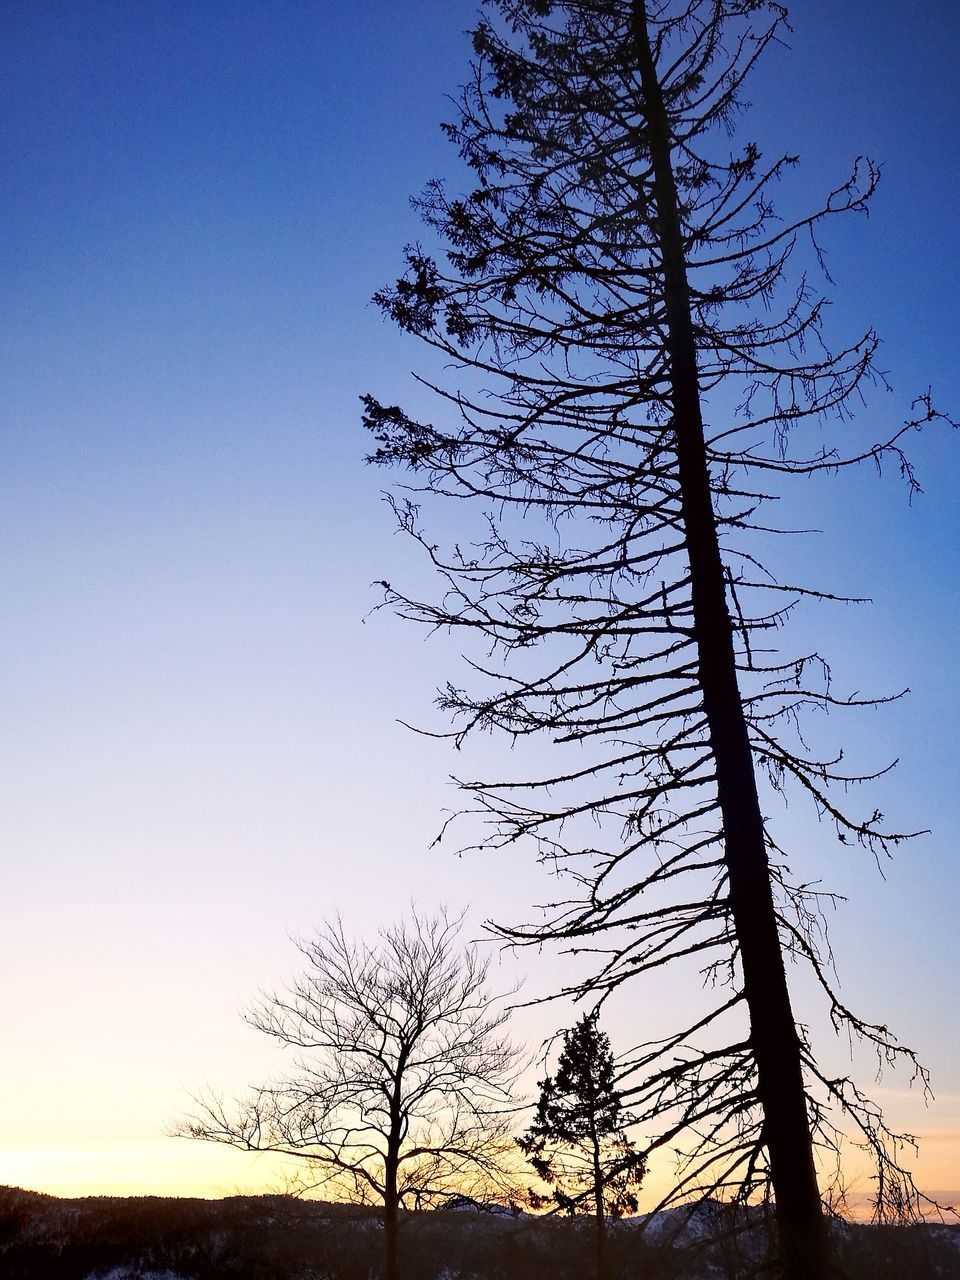 tree, bare tree, nature, beauty in nature, tranquility, tranquil scene, scenics, branch, landscape, silhouette, no people, tree trunk, outdoors, low angle view, sky, sunset, clear sky, growth, day